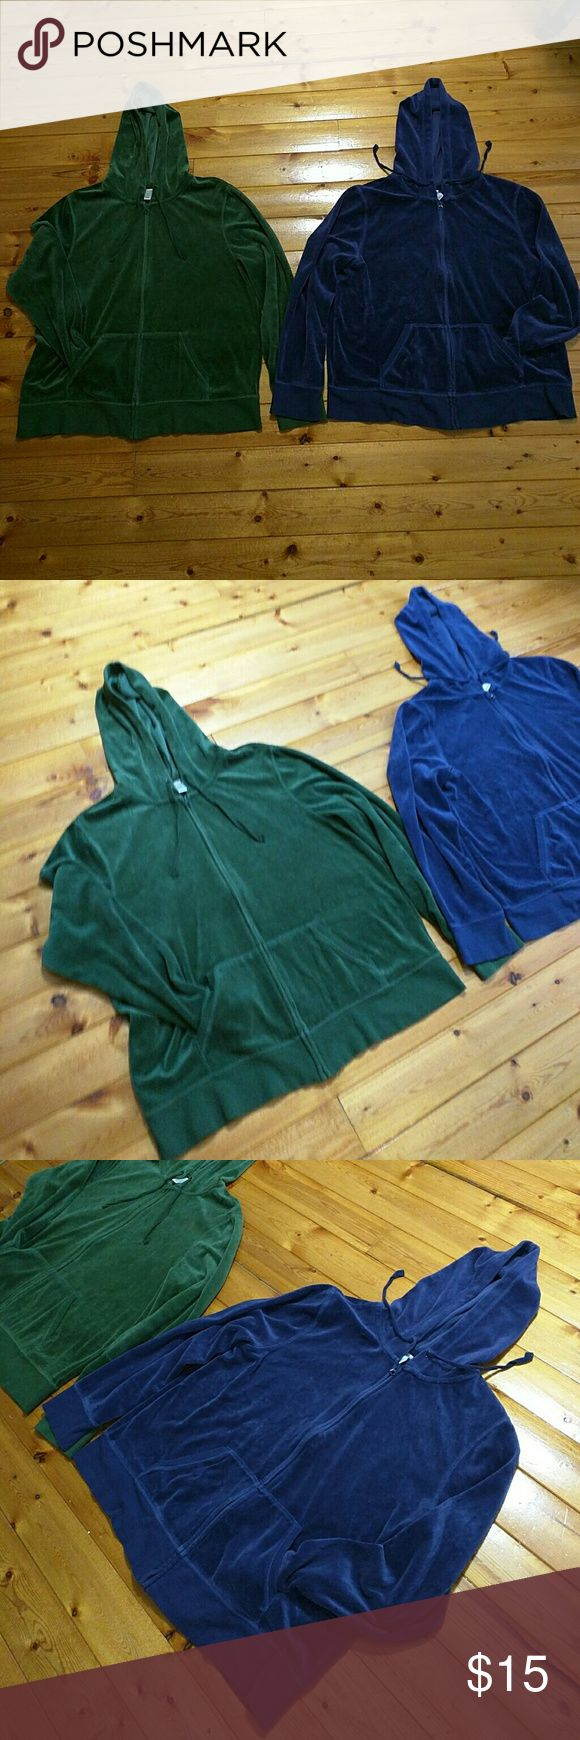 Old Navy Hoodies (two colors available) ??Please tell me your color choice with your purchase. Message me below. XL Hunter green Navy Blue Cotton Polyester blend Old Navy Tops Sweatshirts & Hoodies